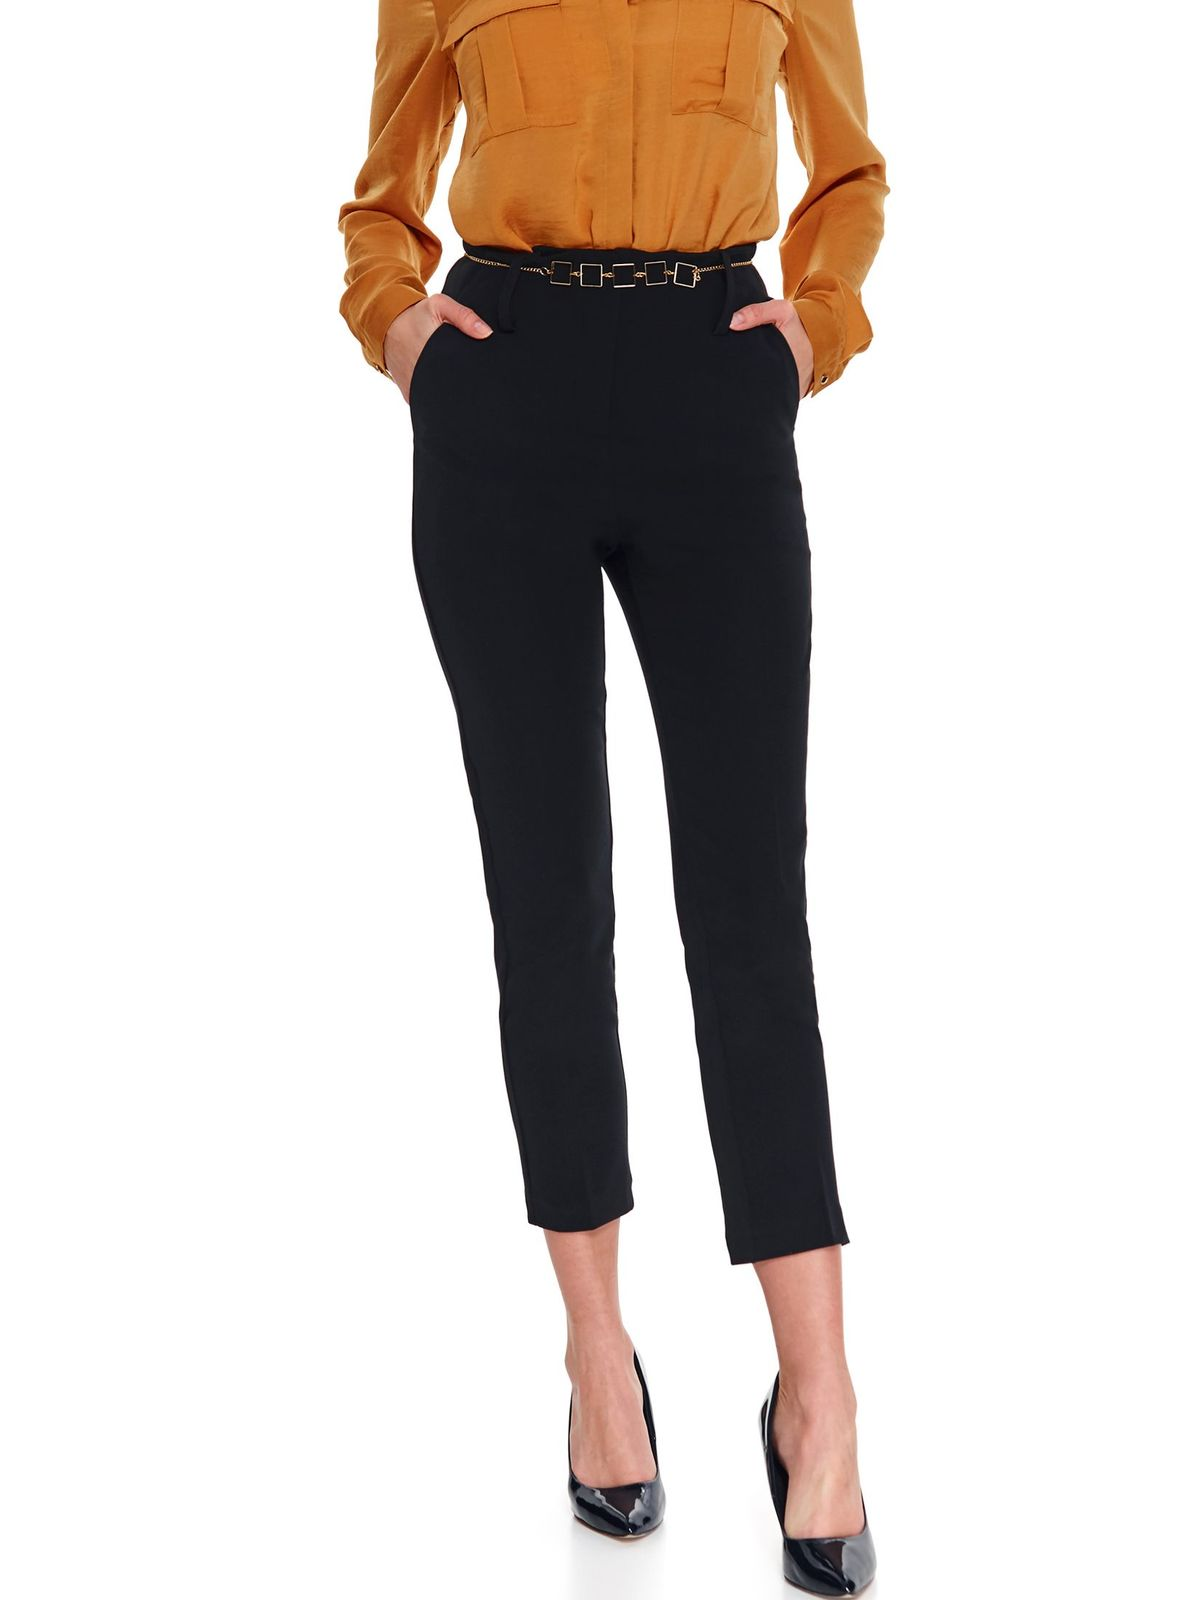 Black trousers casual conical cloth thin fabric with pockets